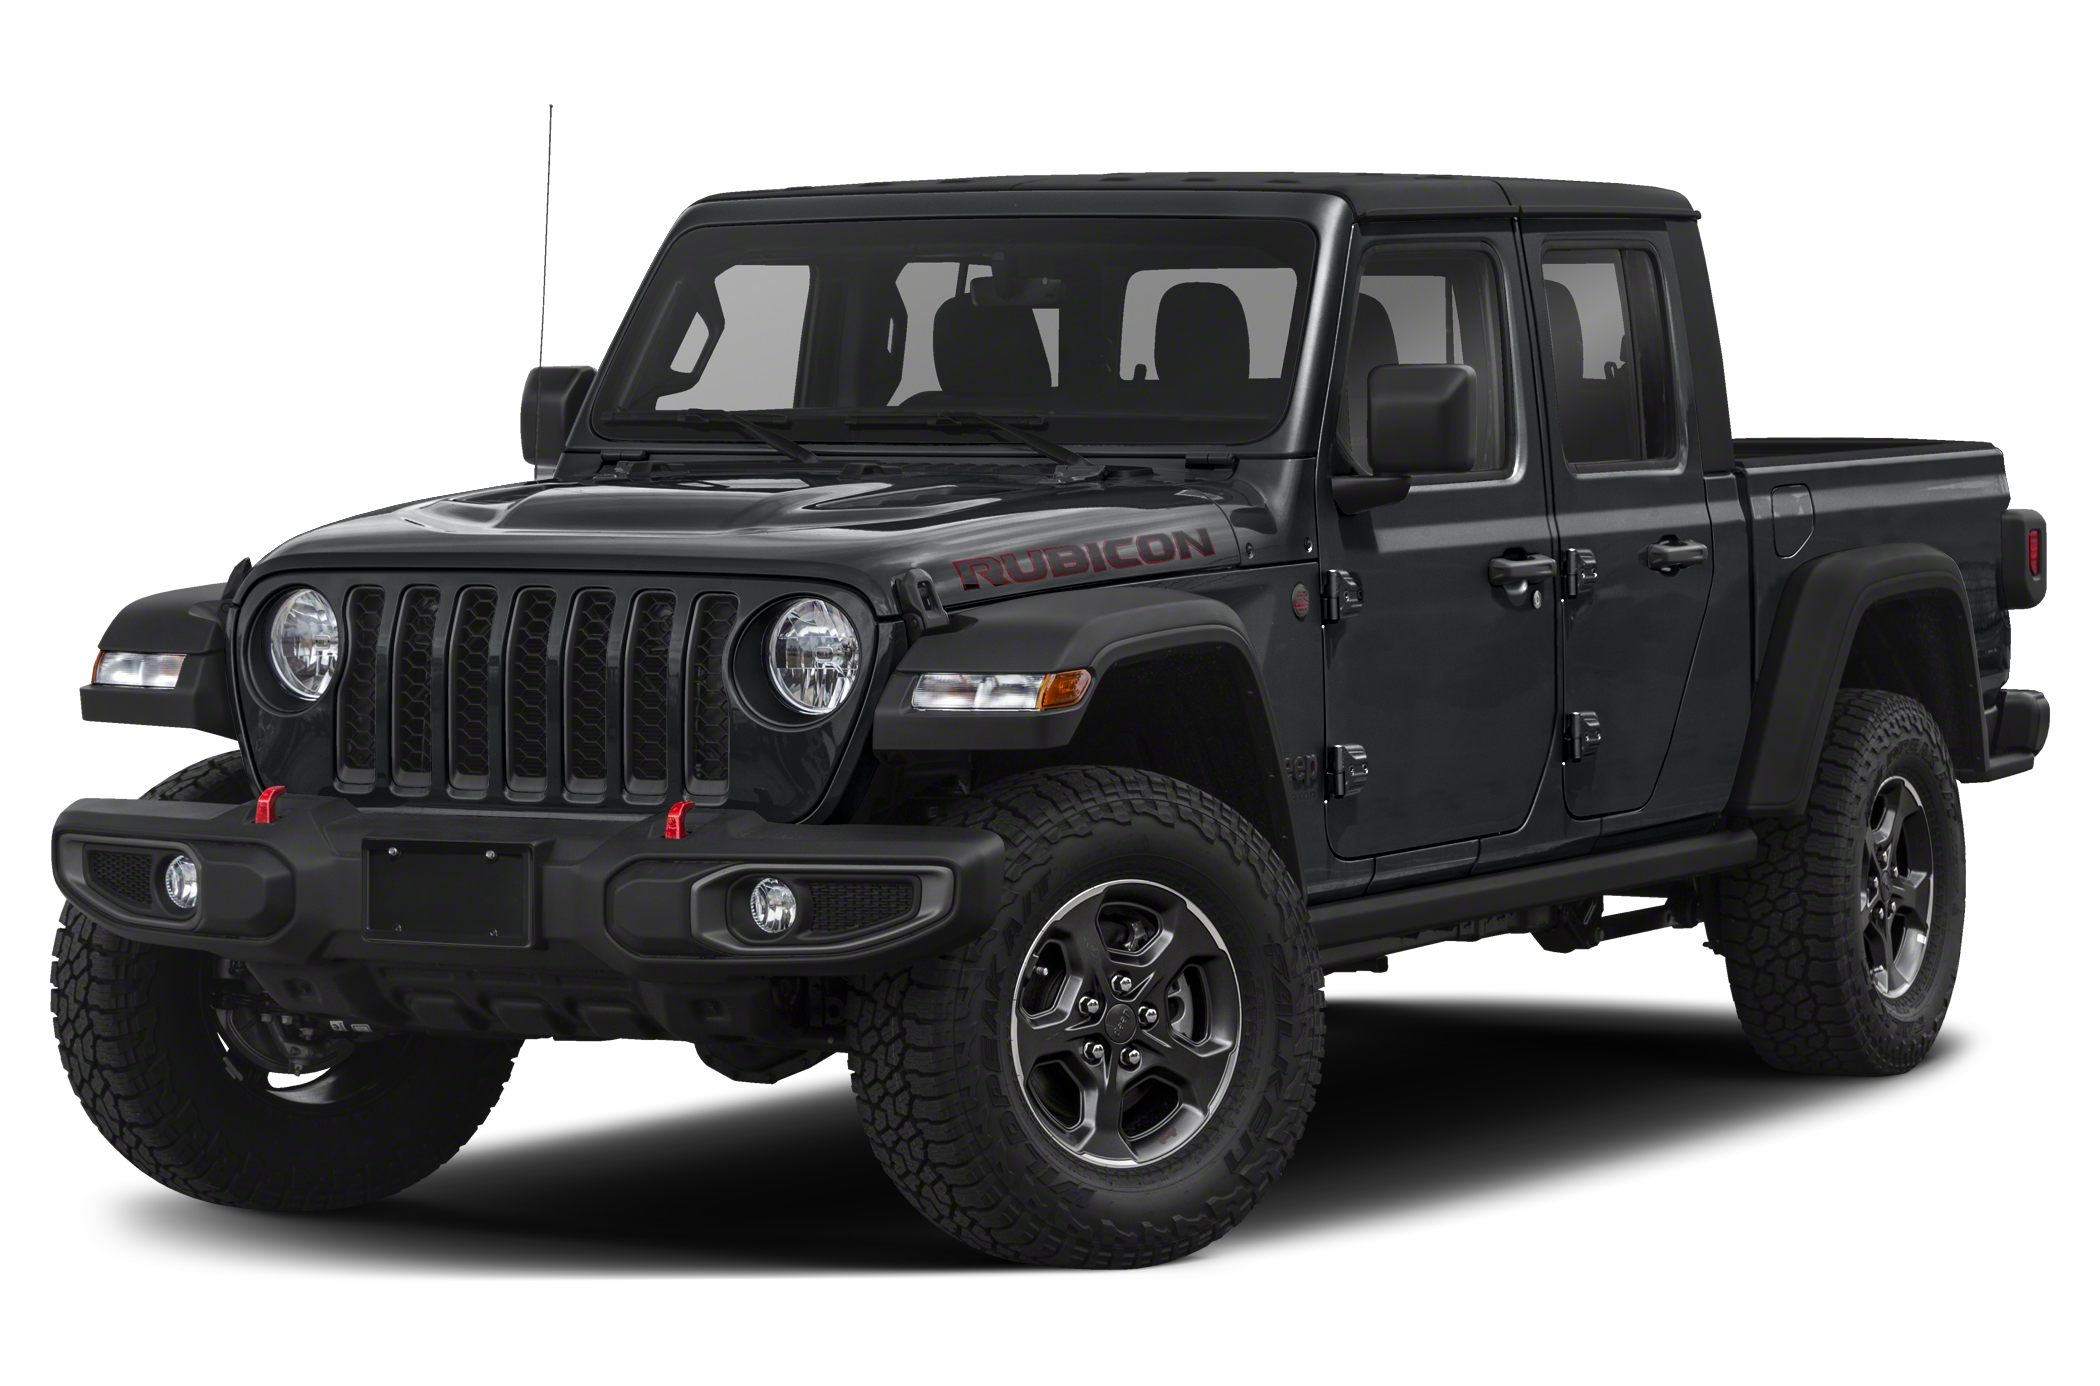 Gator Garage Pontiac Il 2020 Jeep Gladiator Rubicon 4dr 4x4 Crew Cab Pricing And Options